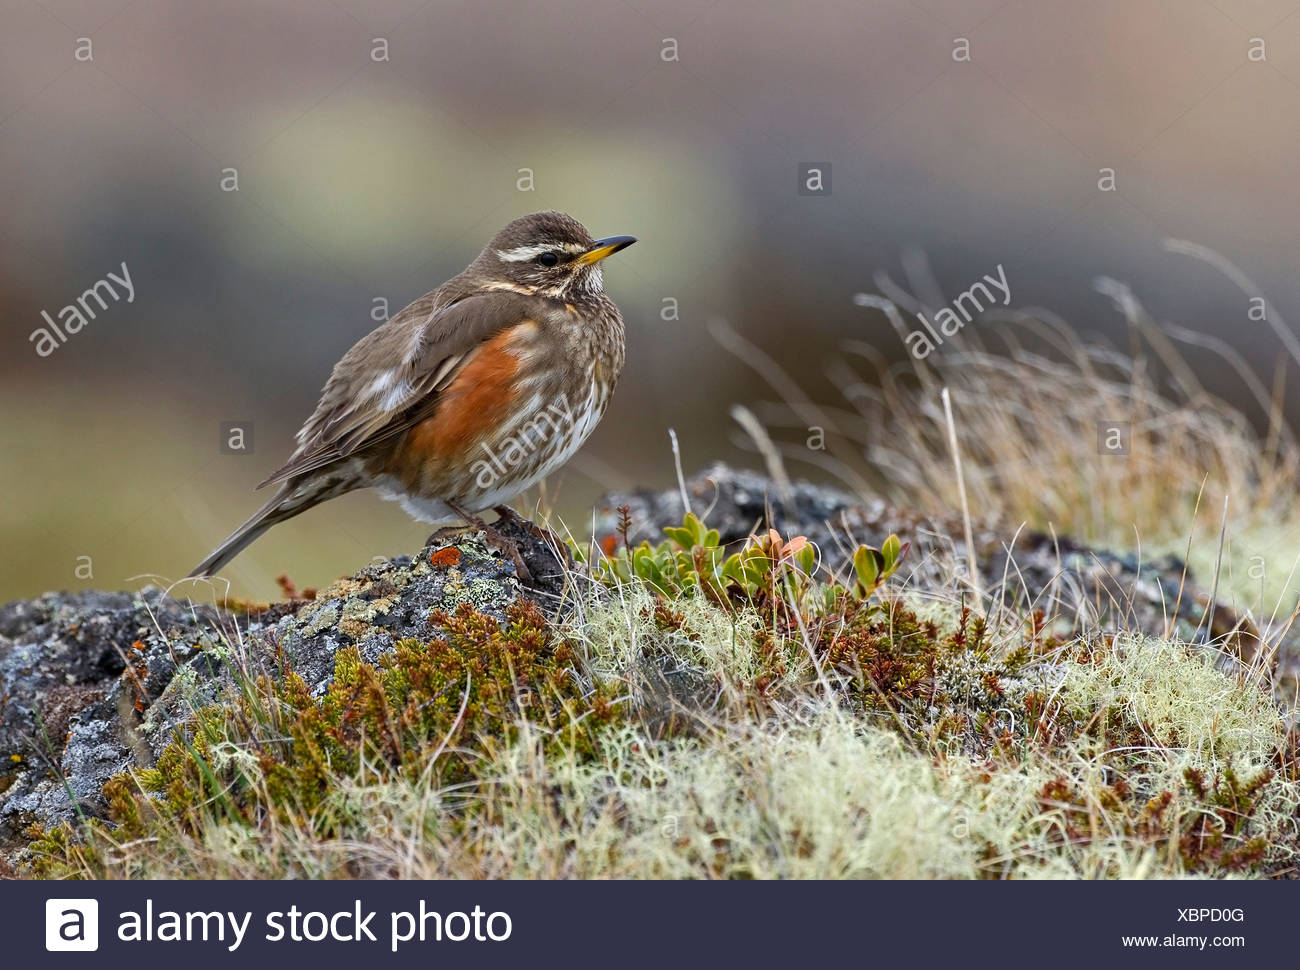 Close up of Redwing bird on grassy stone against blurred 1300x970